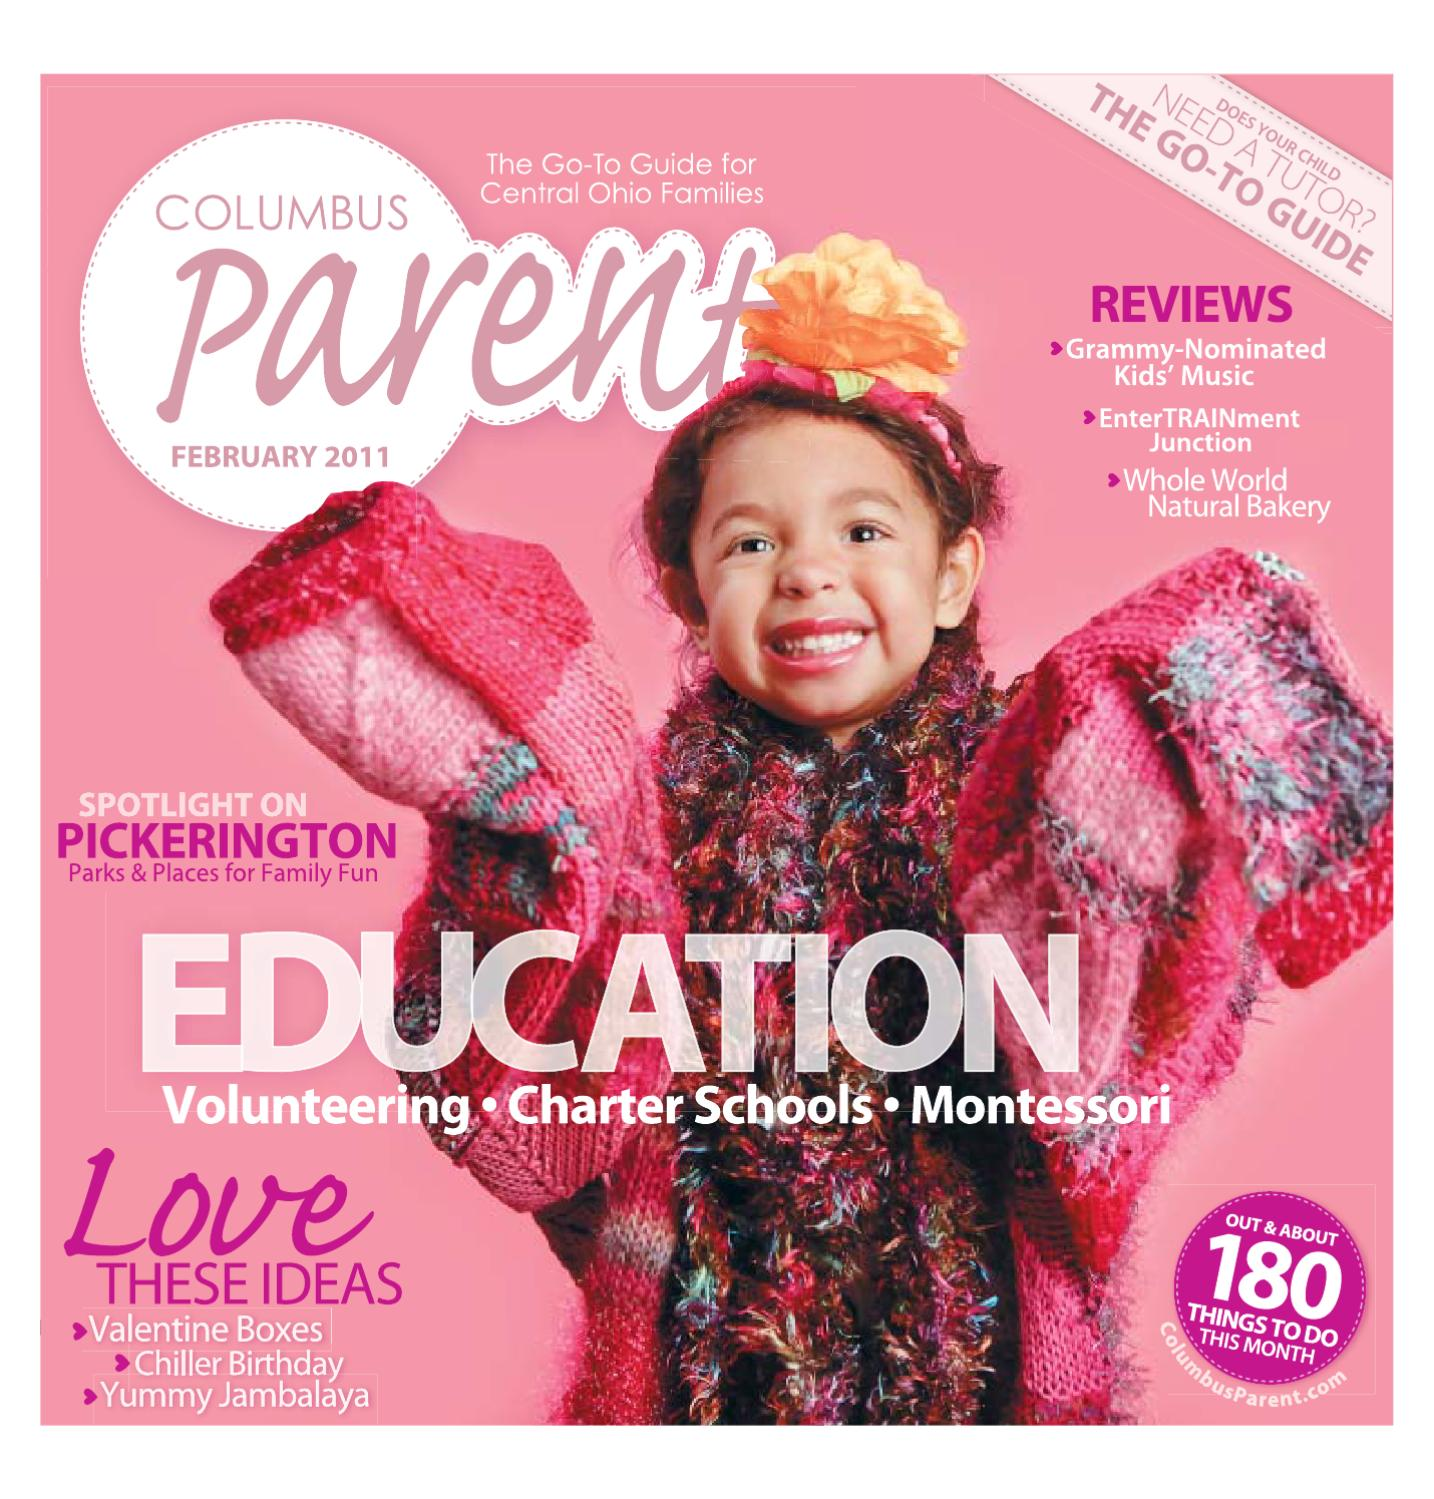 Columbus Parent February 2011 by The Columbus Dispatch - issuu